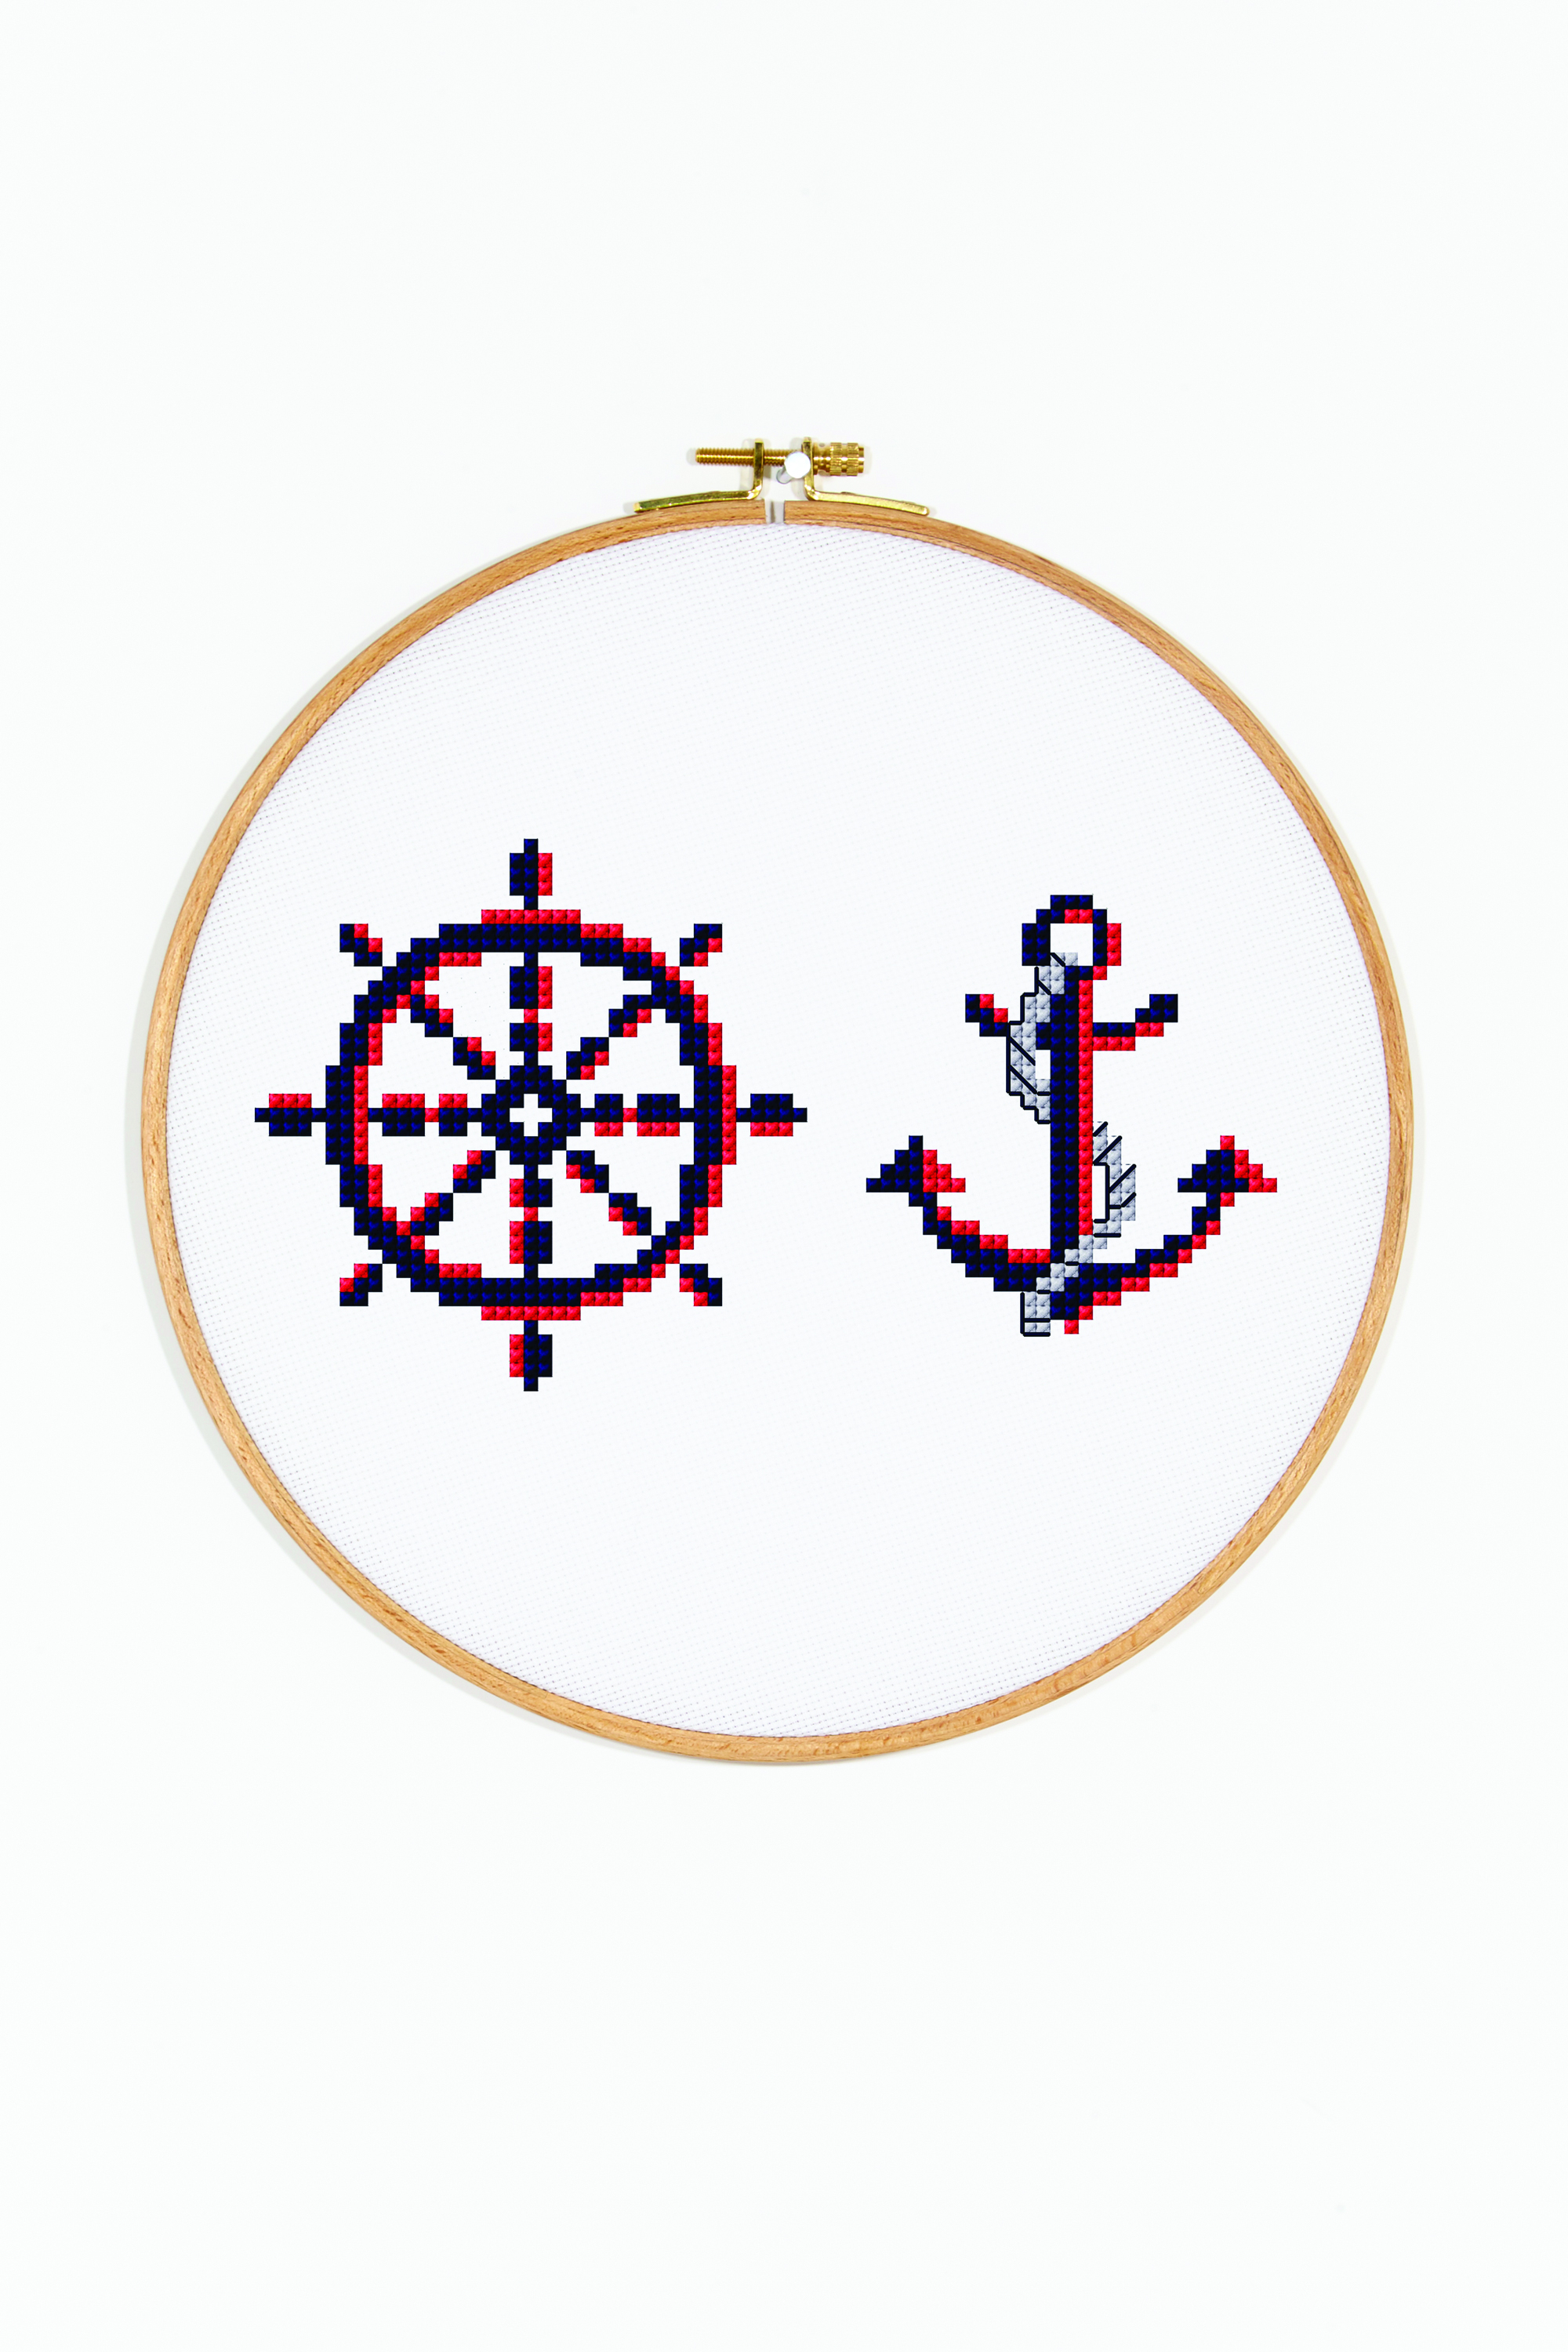 Nautical Embroidery Patterns The Nautical Anchor Cross Stitch Pattern